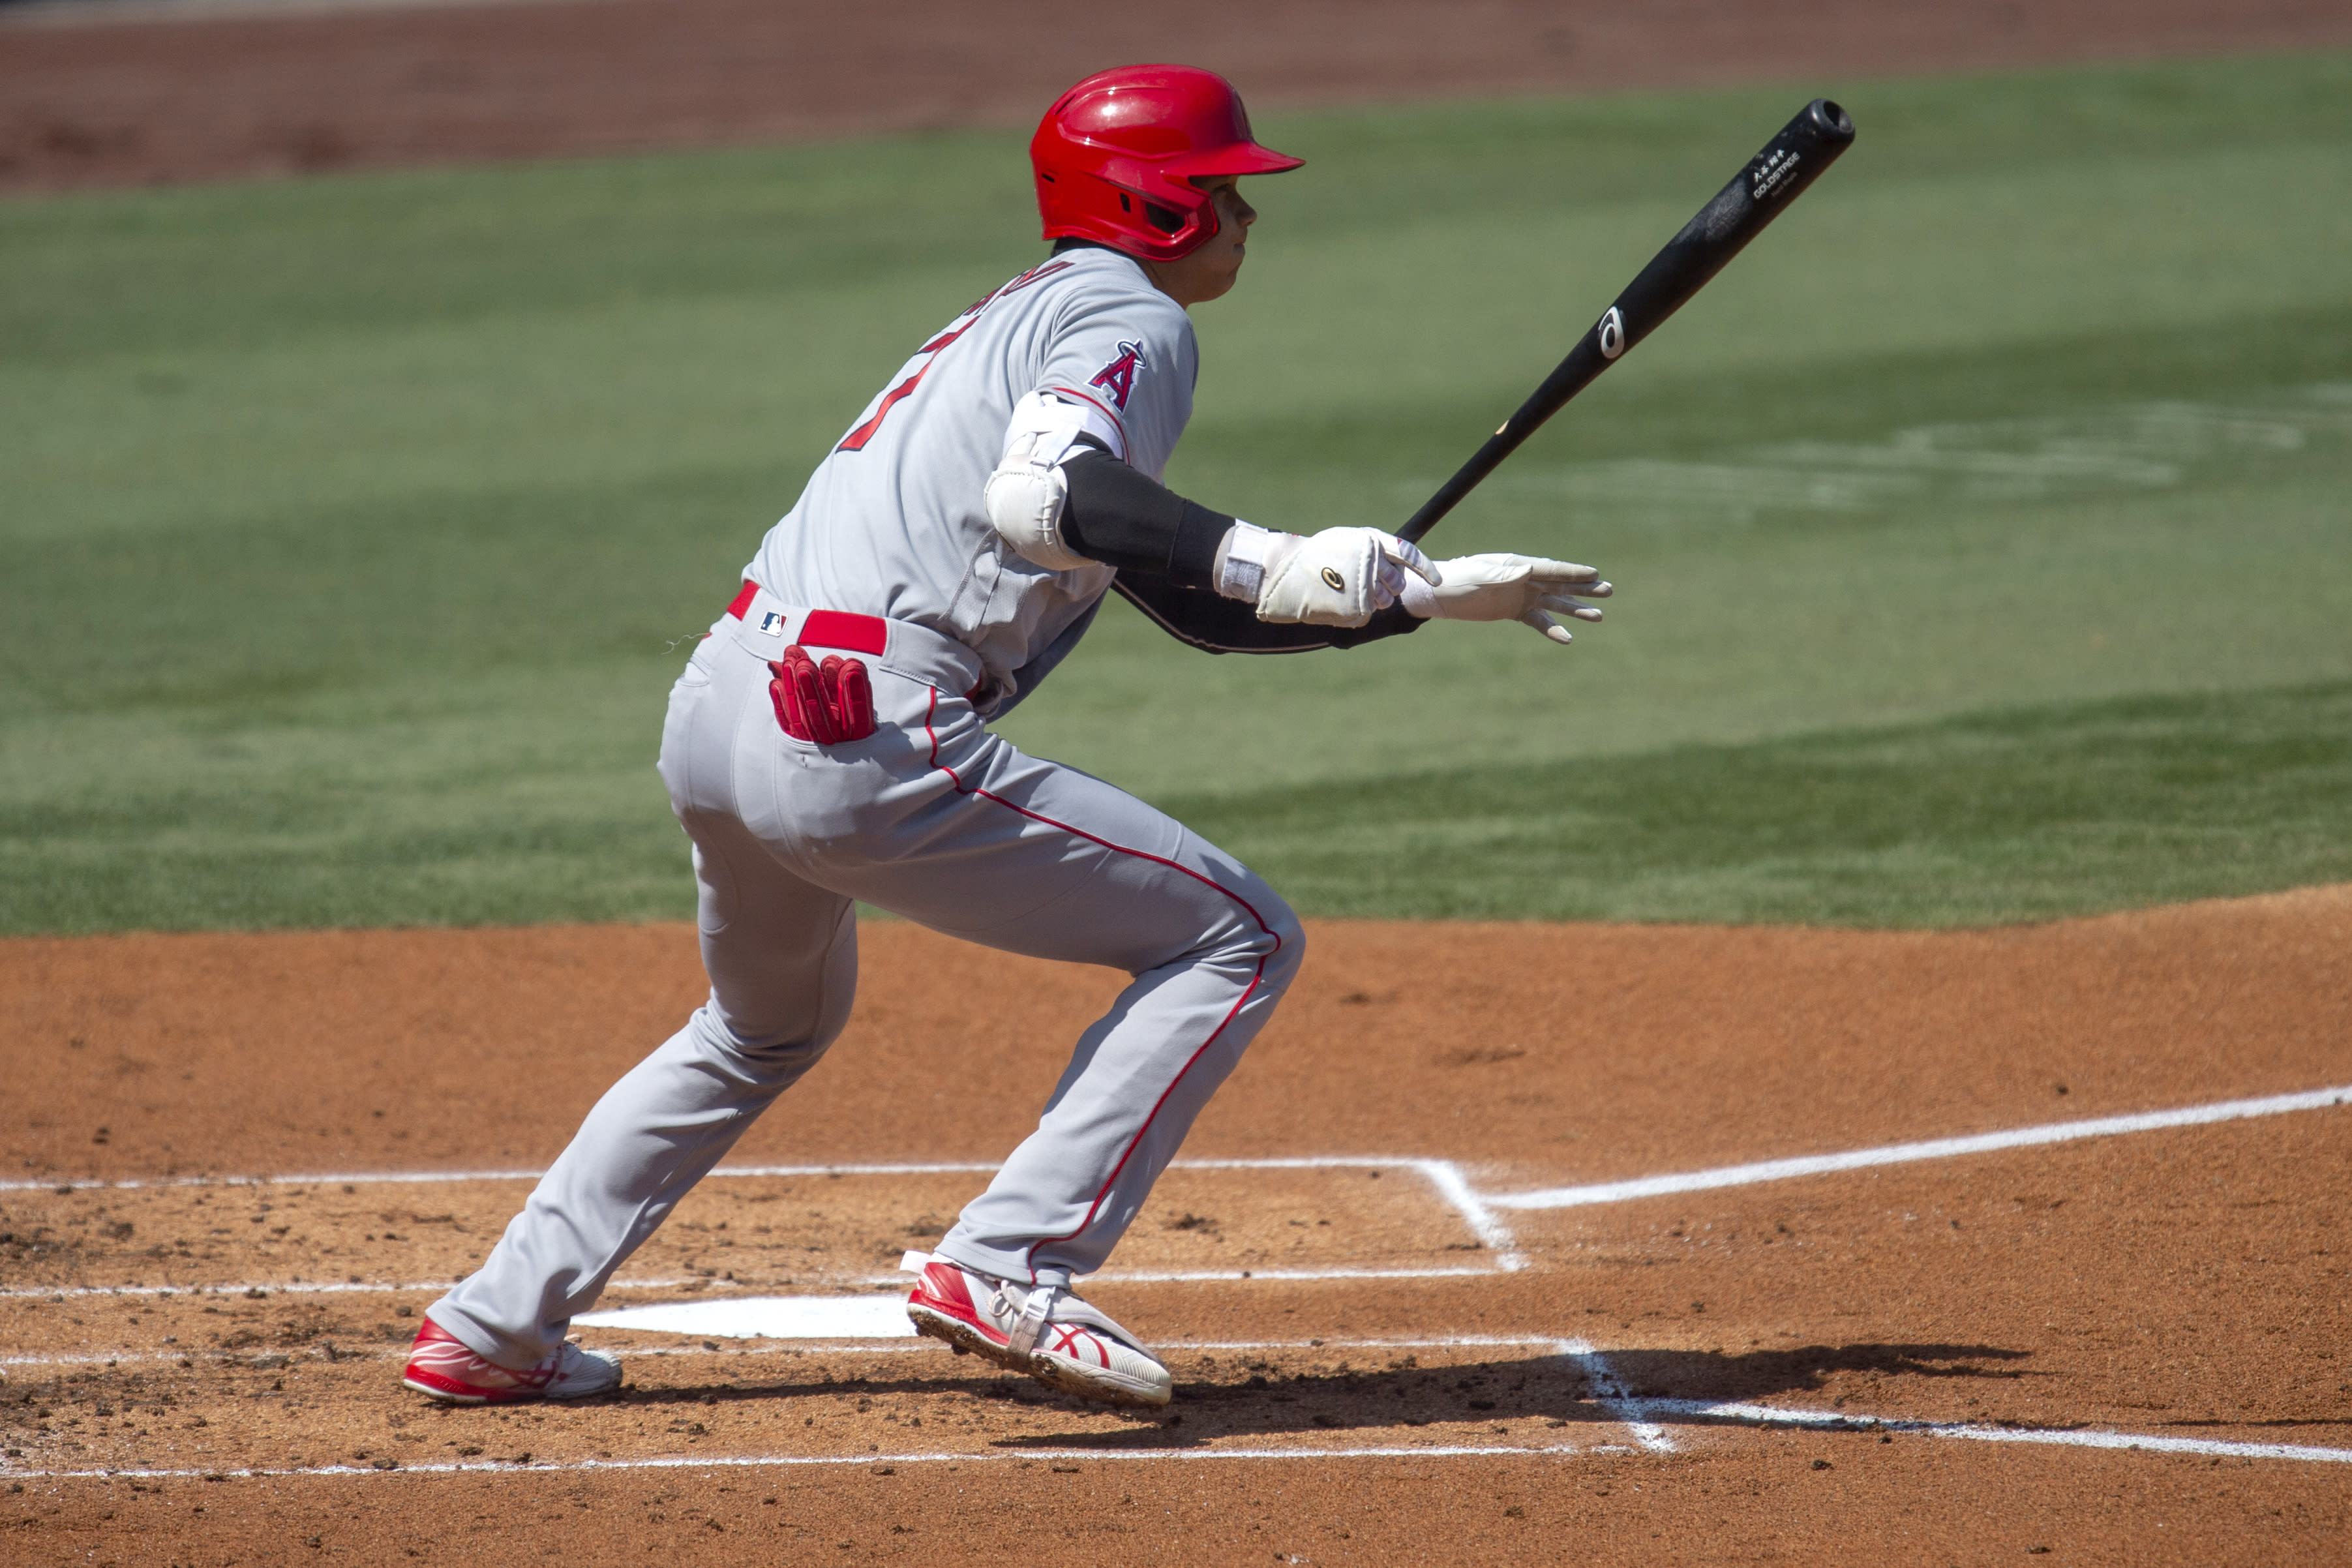 Ohtani wants to remain 2-way player for Angels in 2021